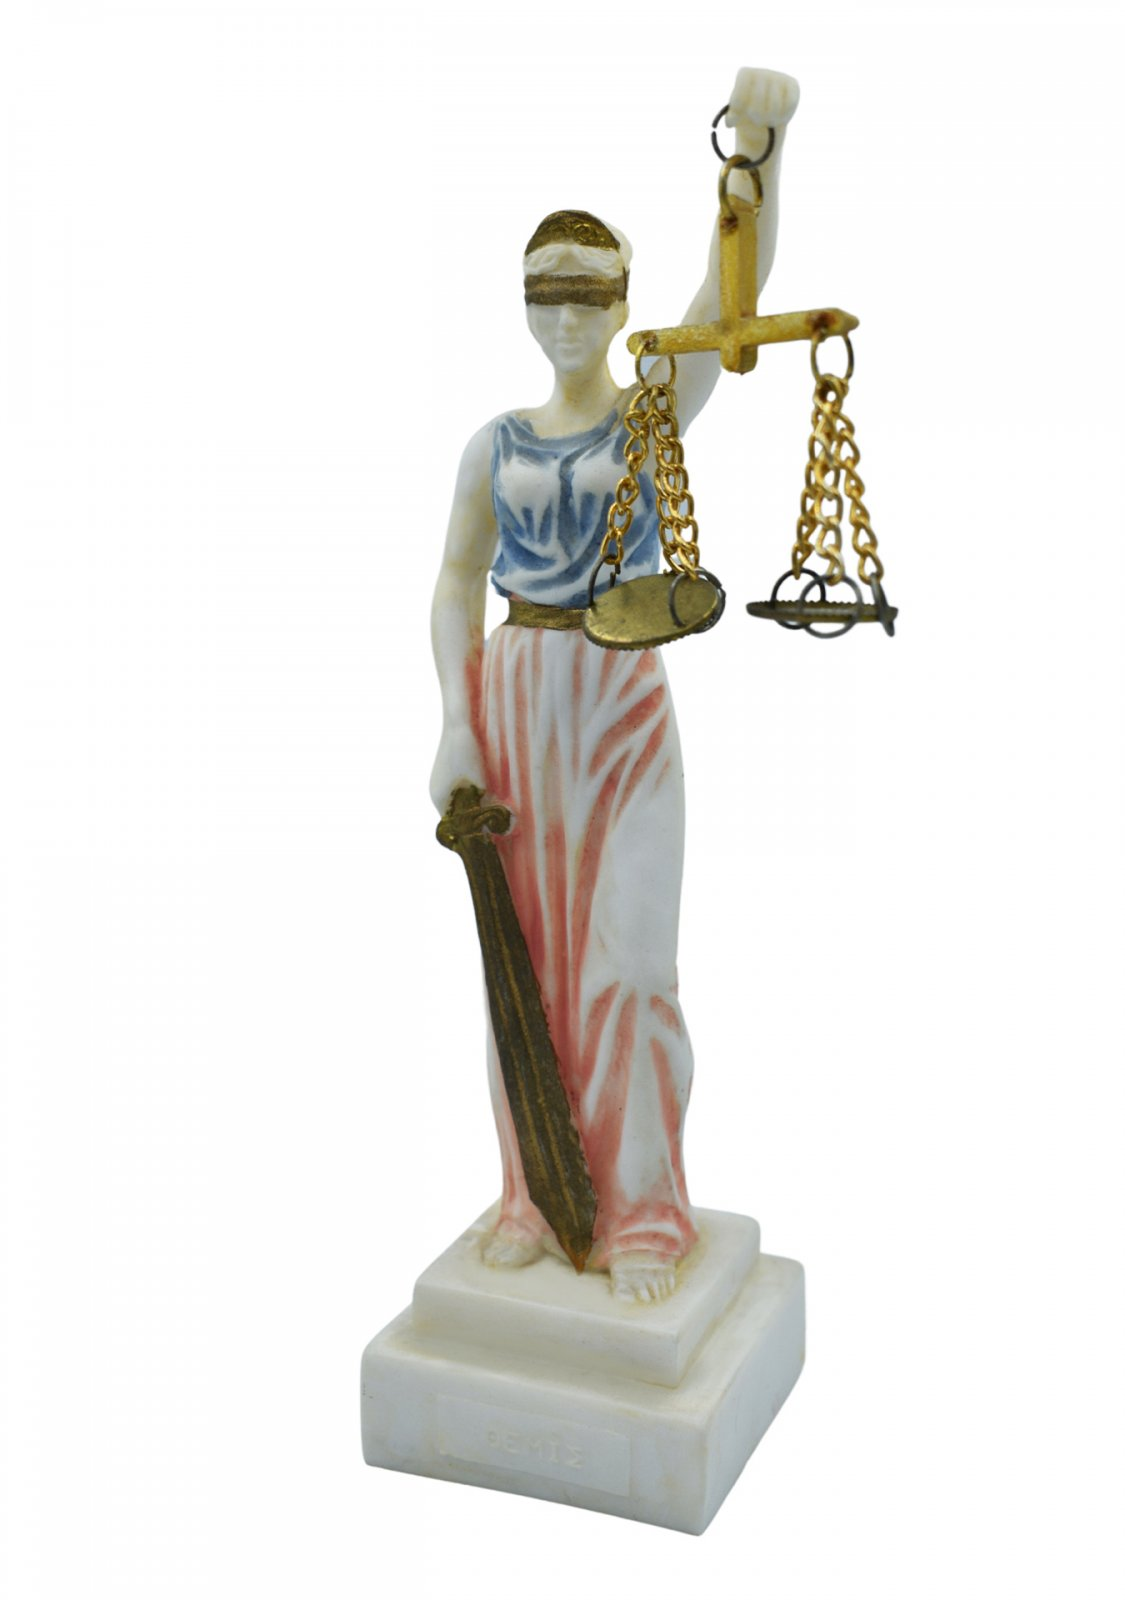 Themis, the greek goddess of justice, small alabaster statue